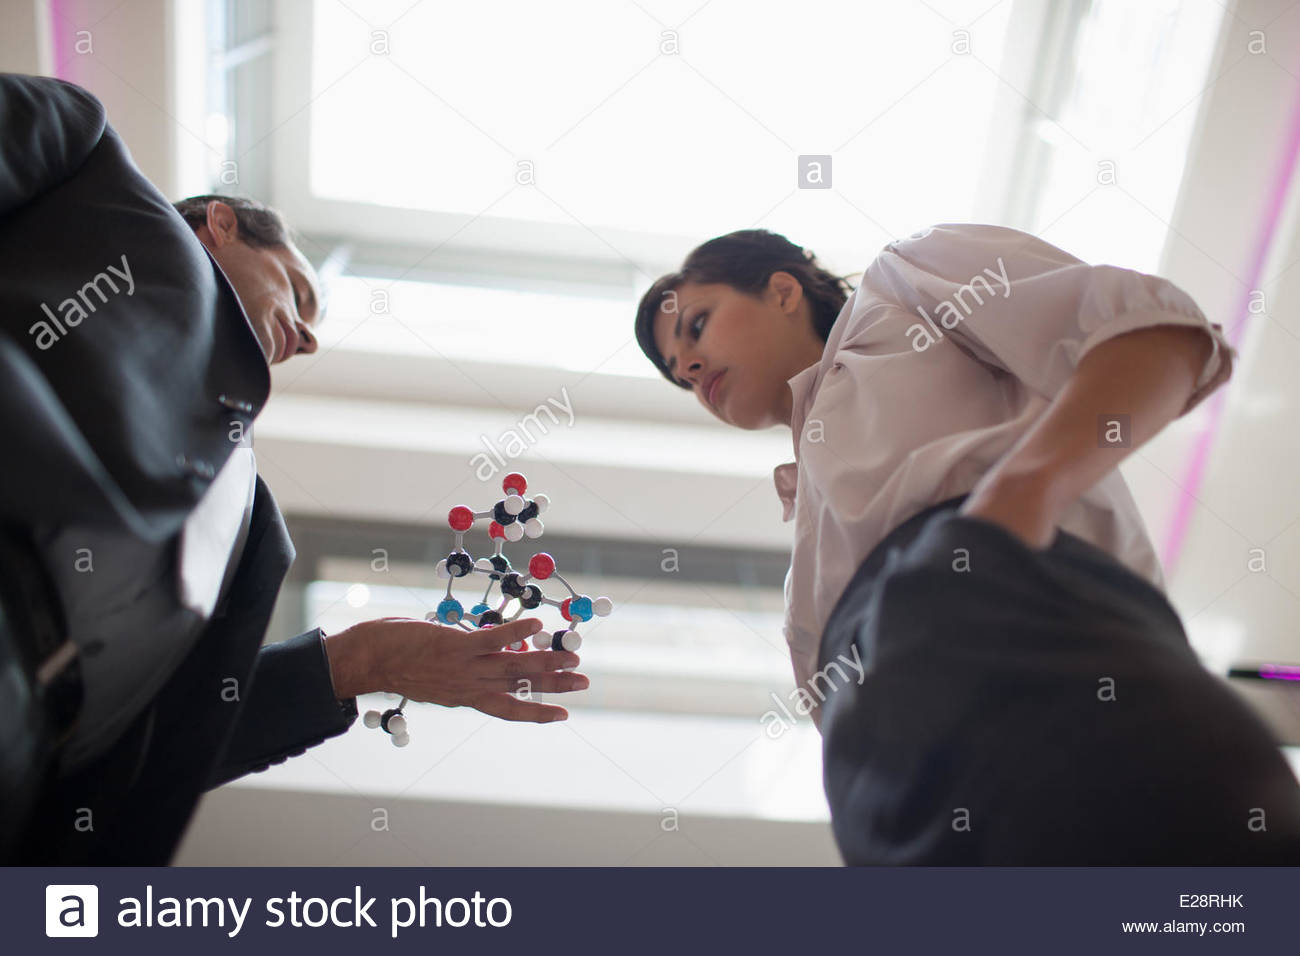 Business people holding model in office - Stock Image